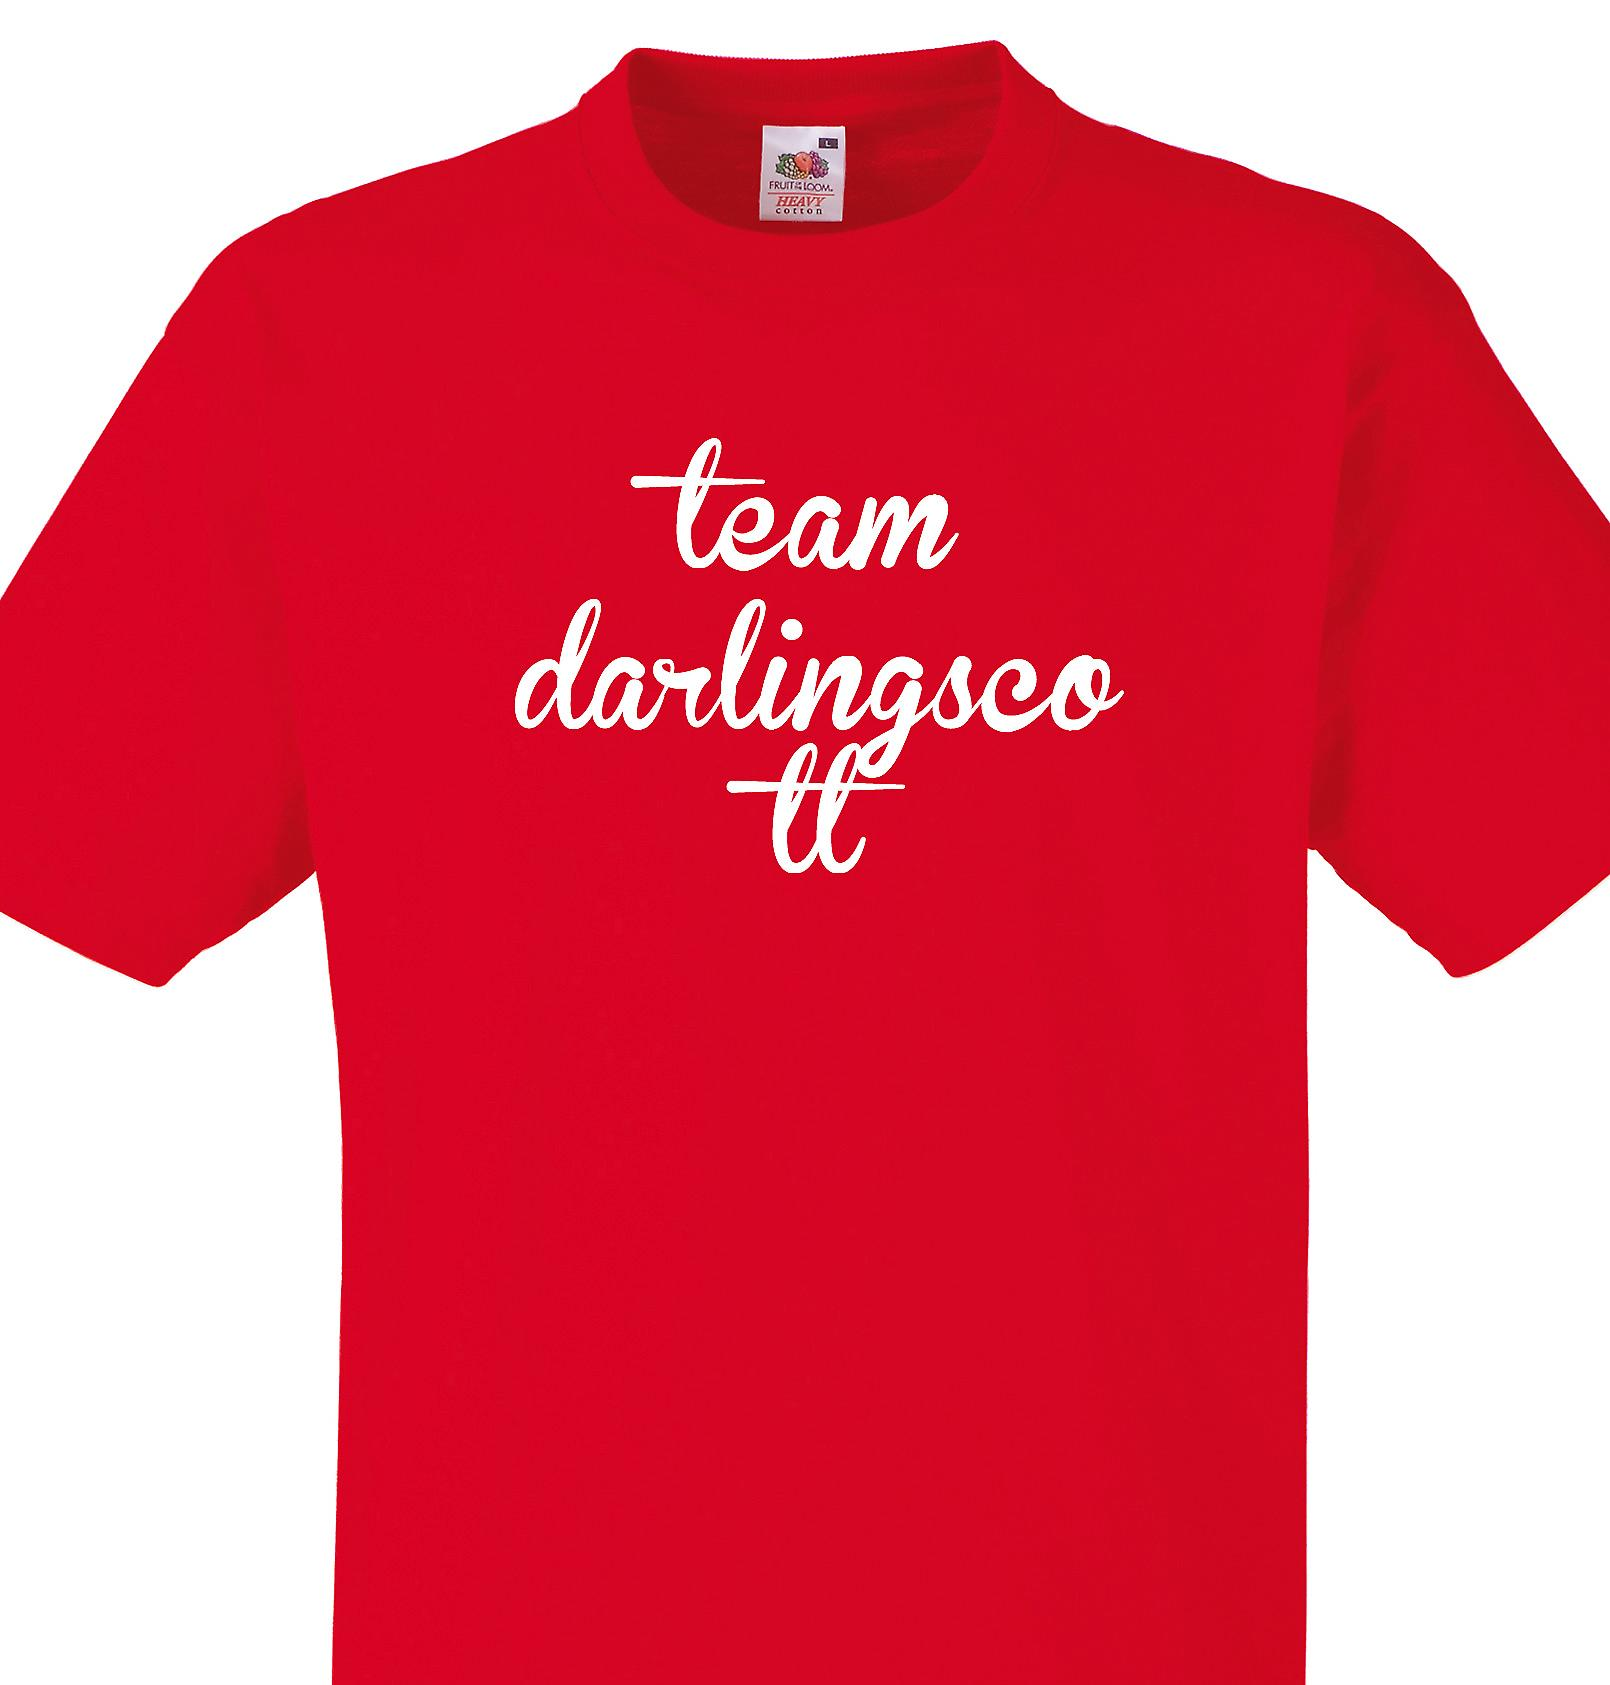 Team Darlingscott Red T shirt